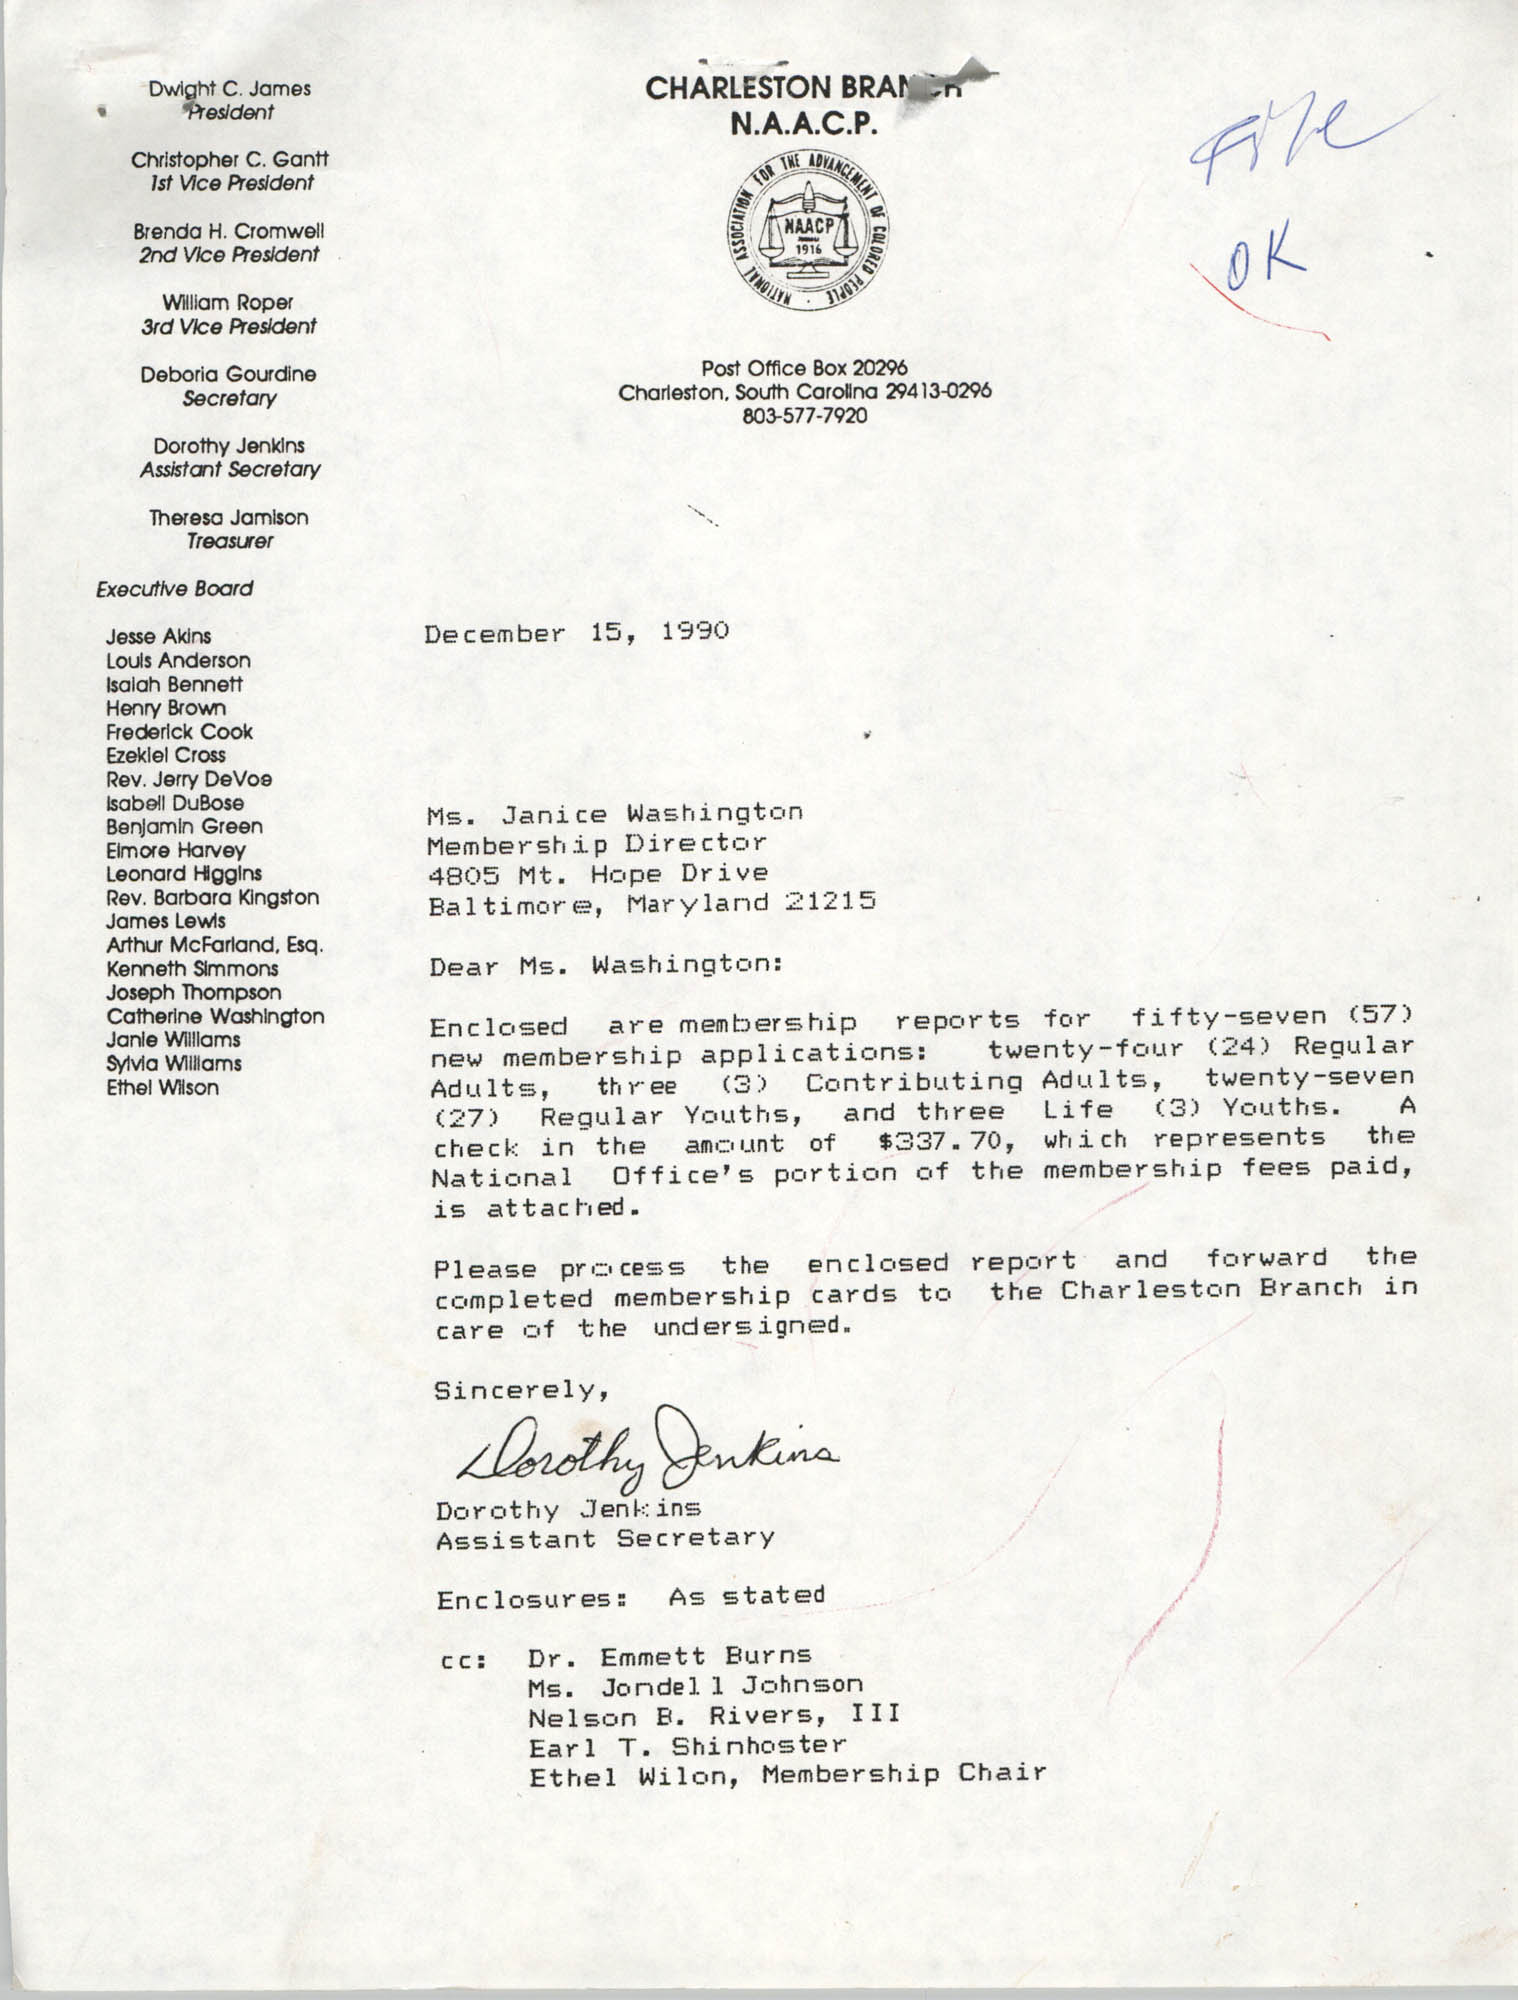 Letter from Dorothy Jenkins to Janice Washington, NAACP, December 15, 1990